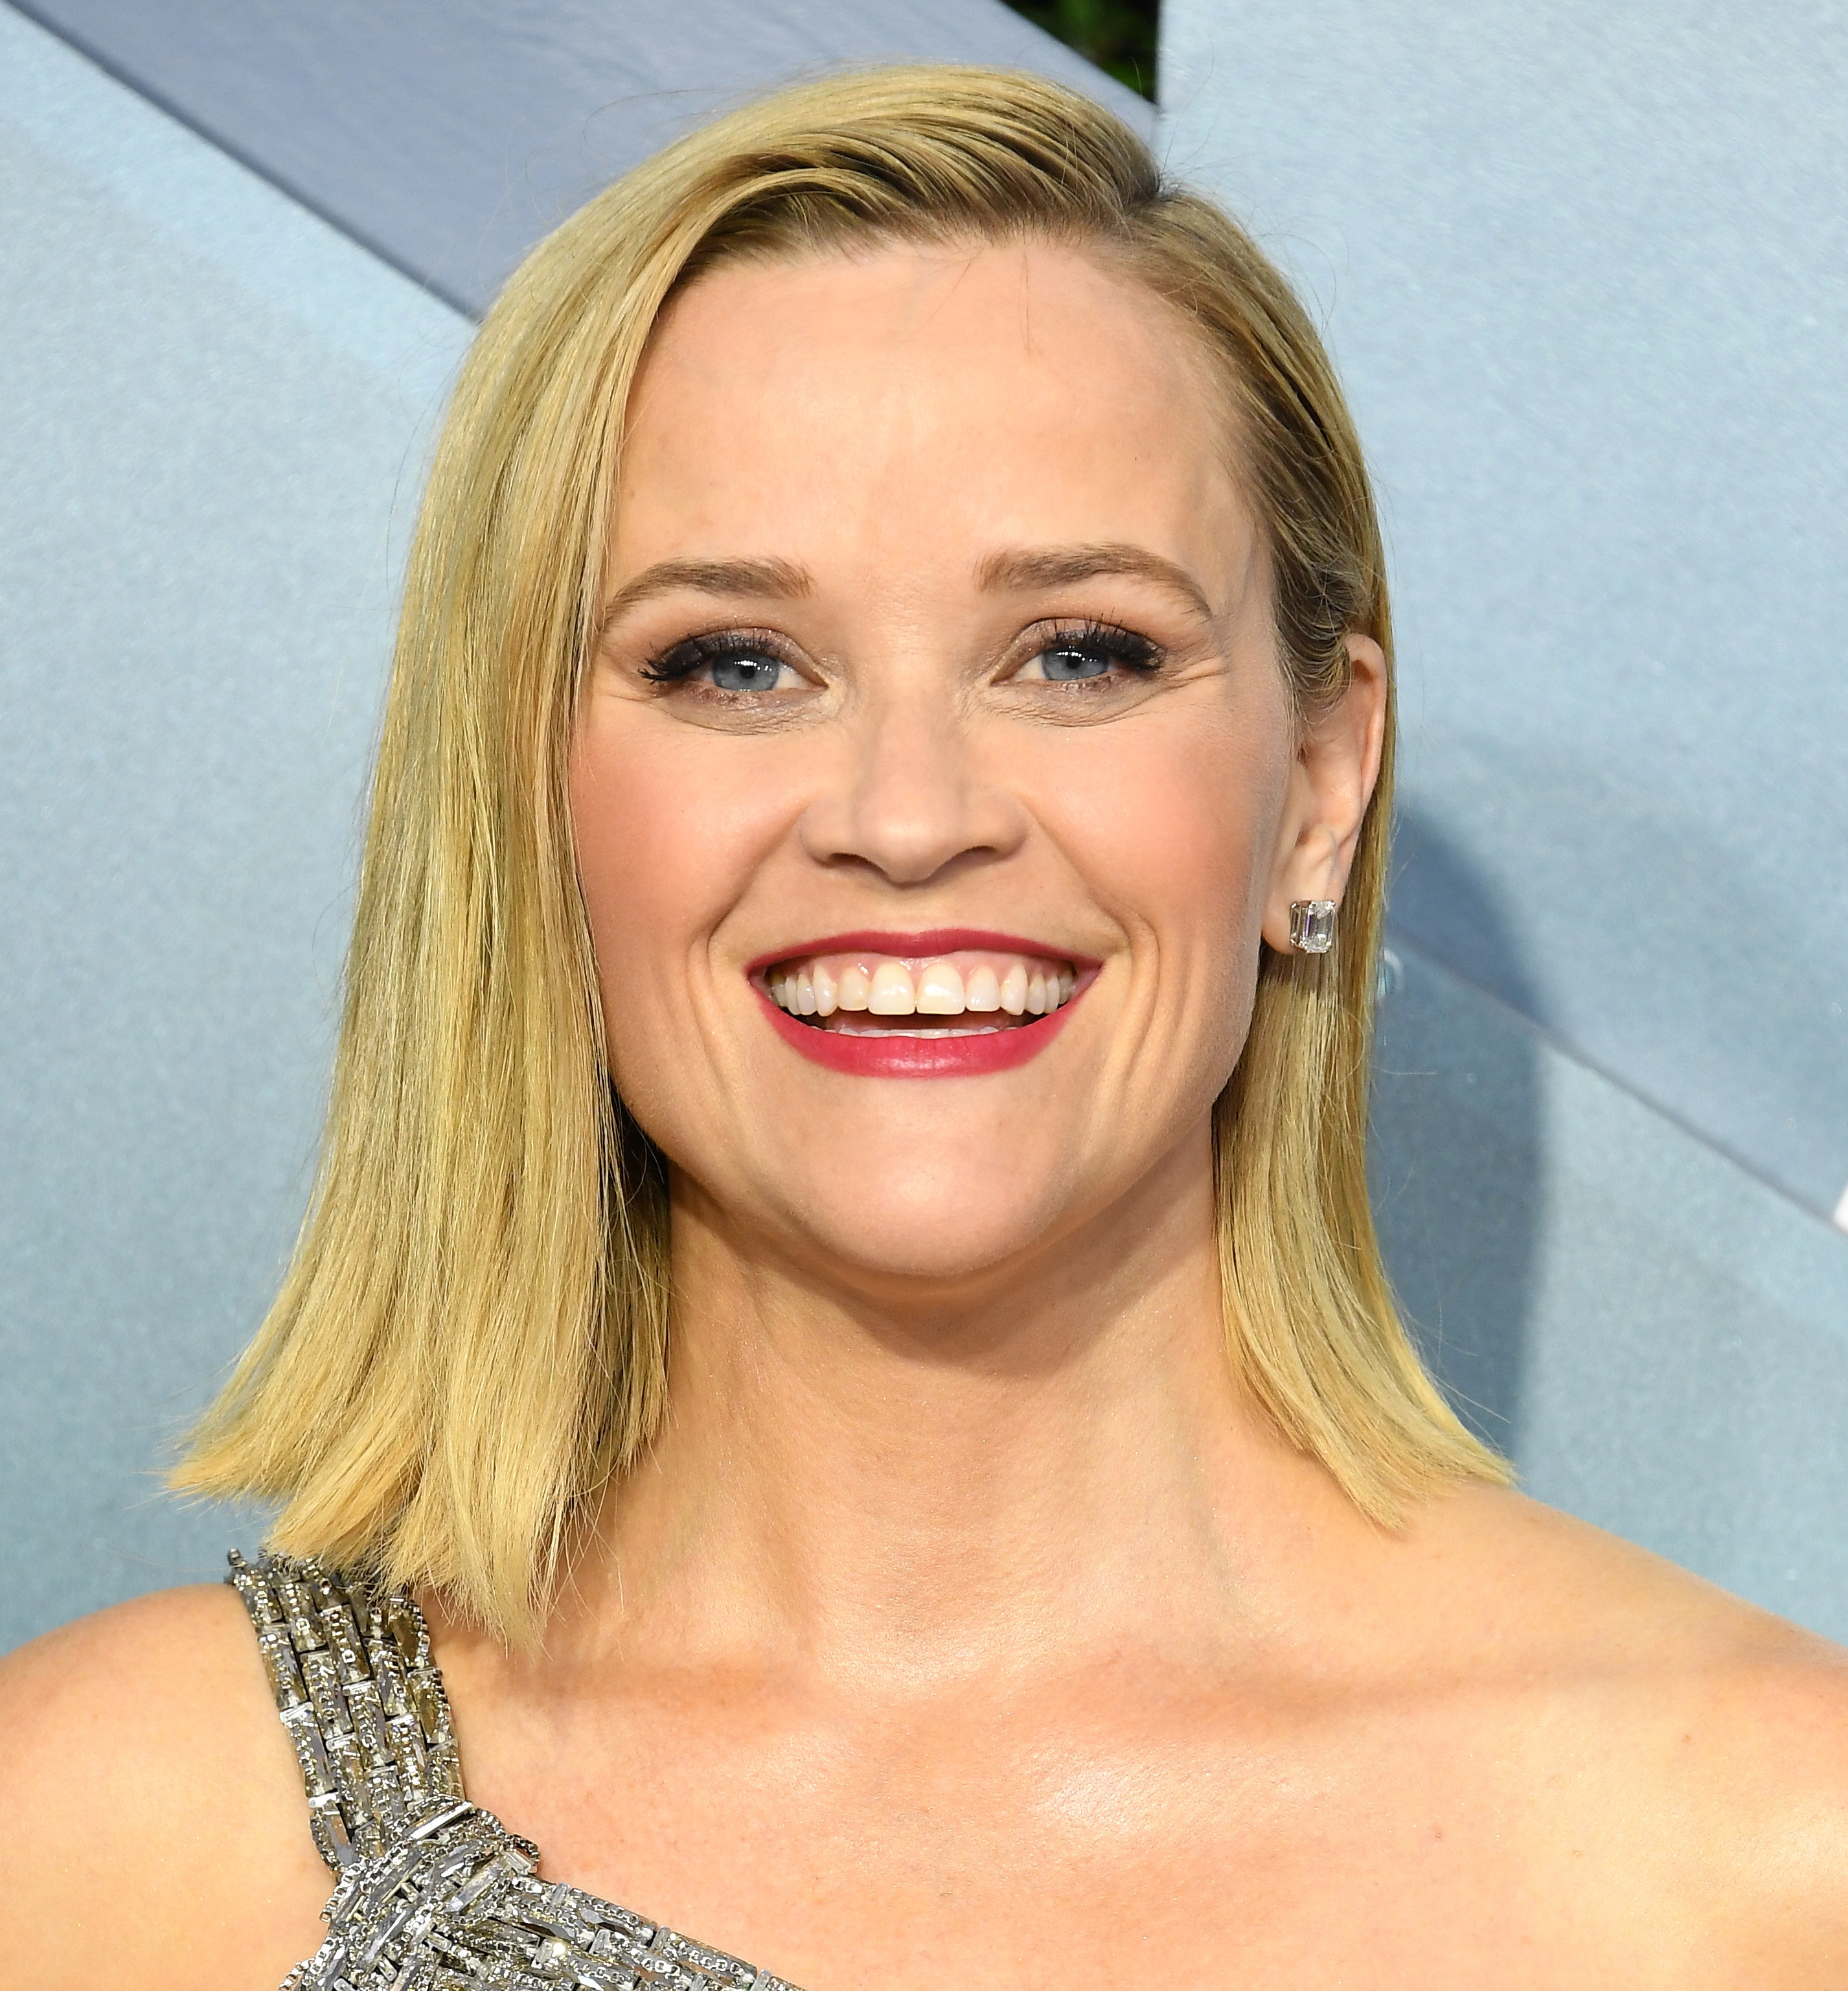 Reese Witherspoon arrives at the 26th Annual Screen Actors Guild Awards